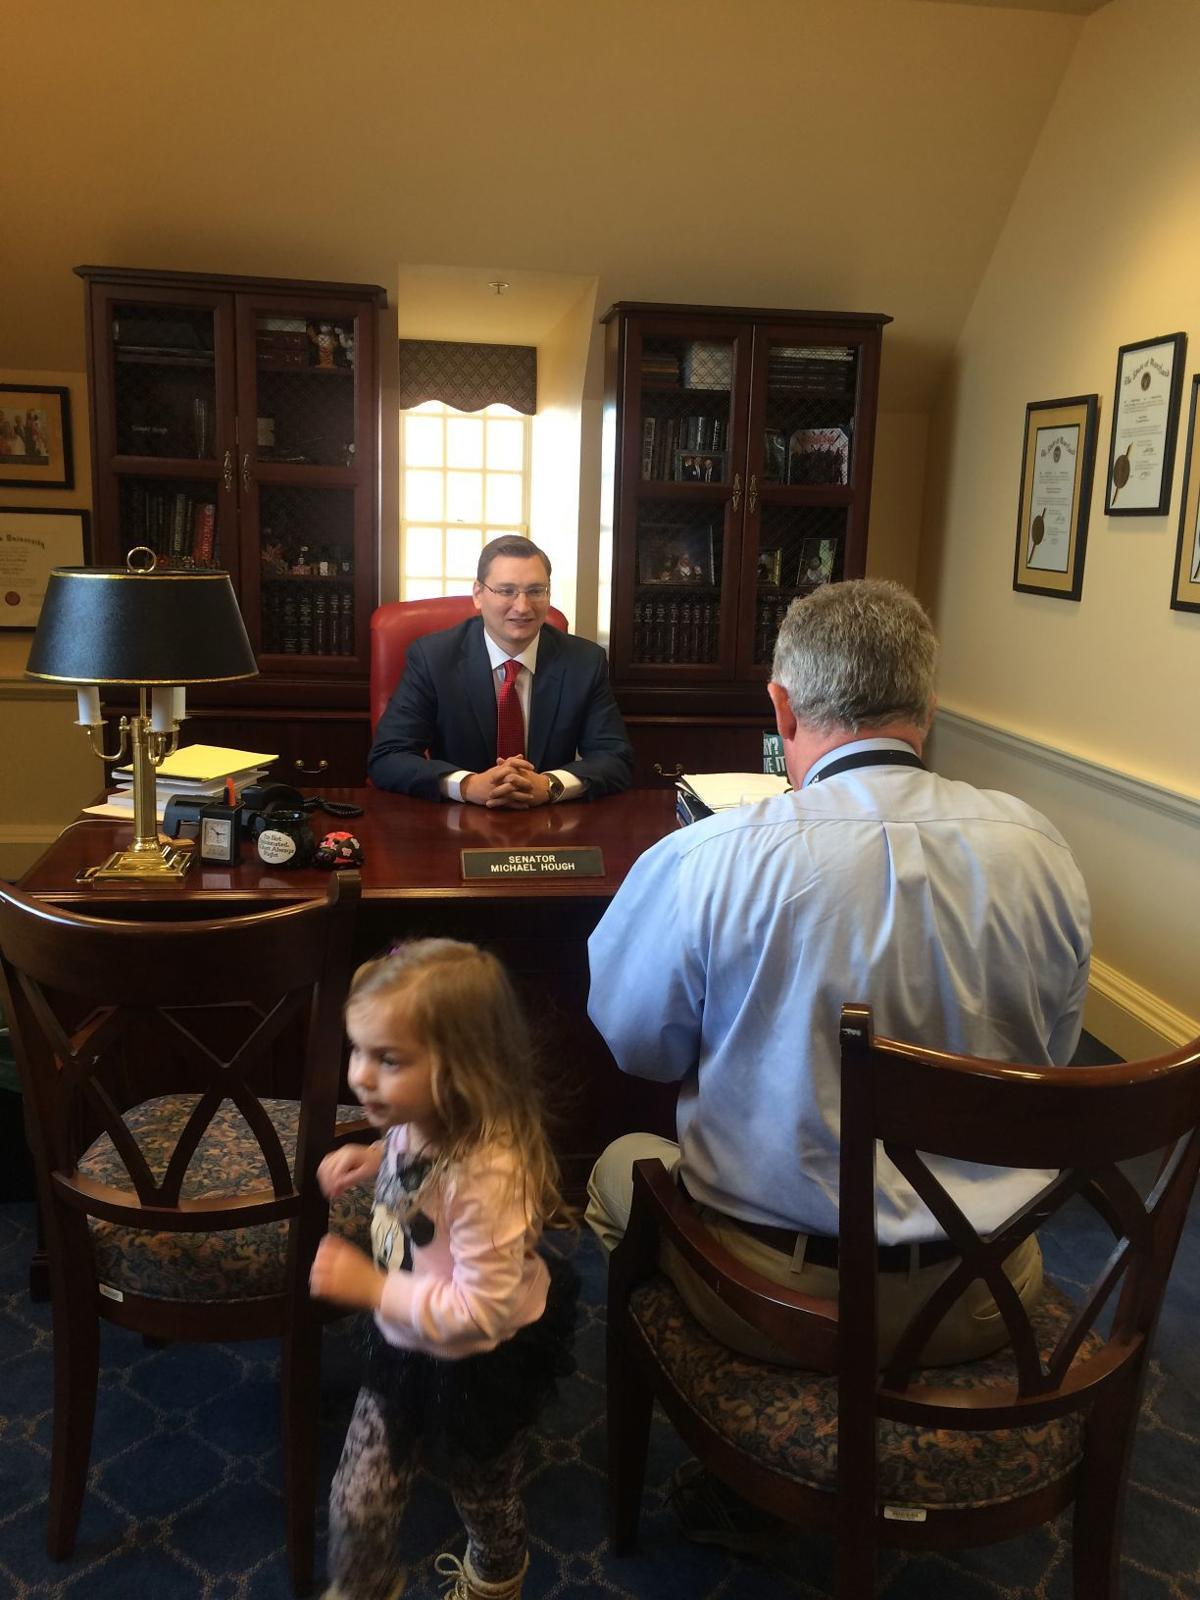 Senator Hough sits for portrait as daughter looks on